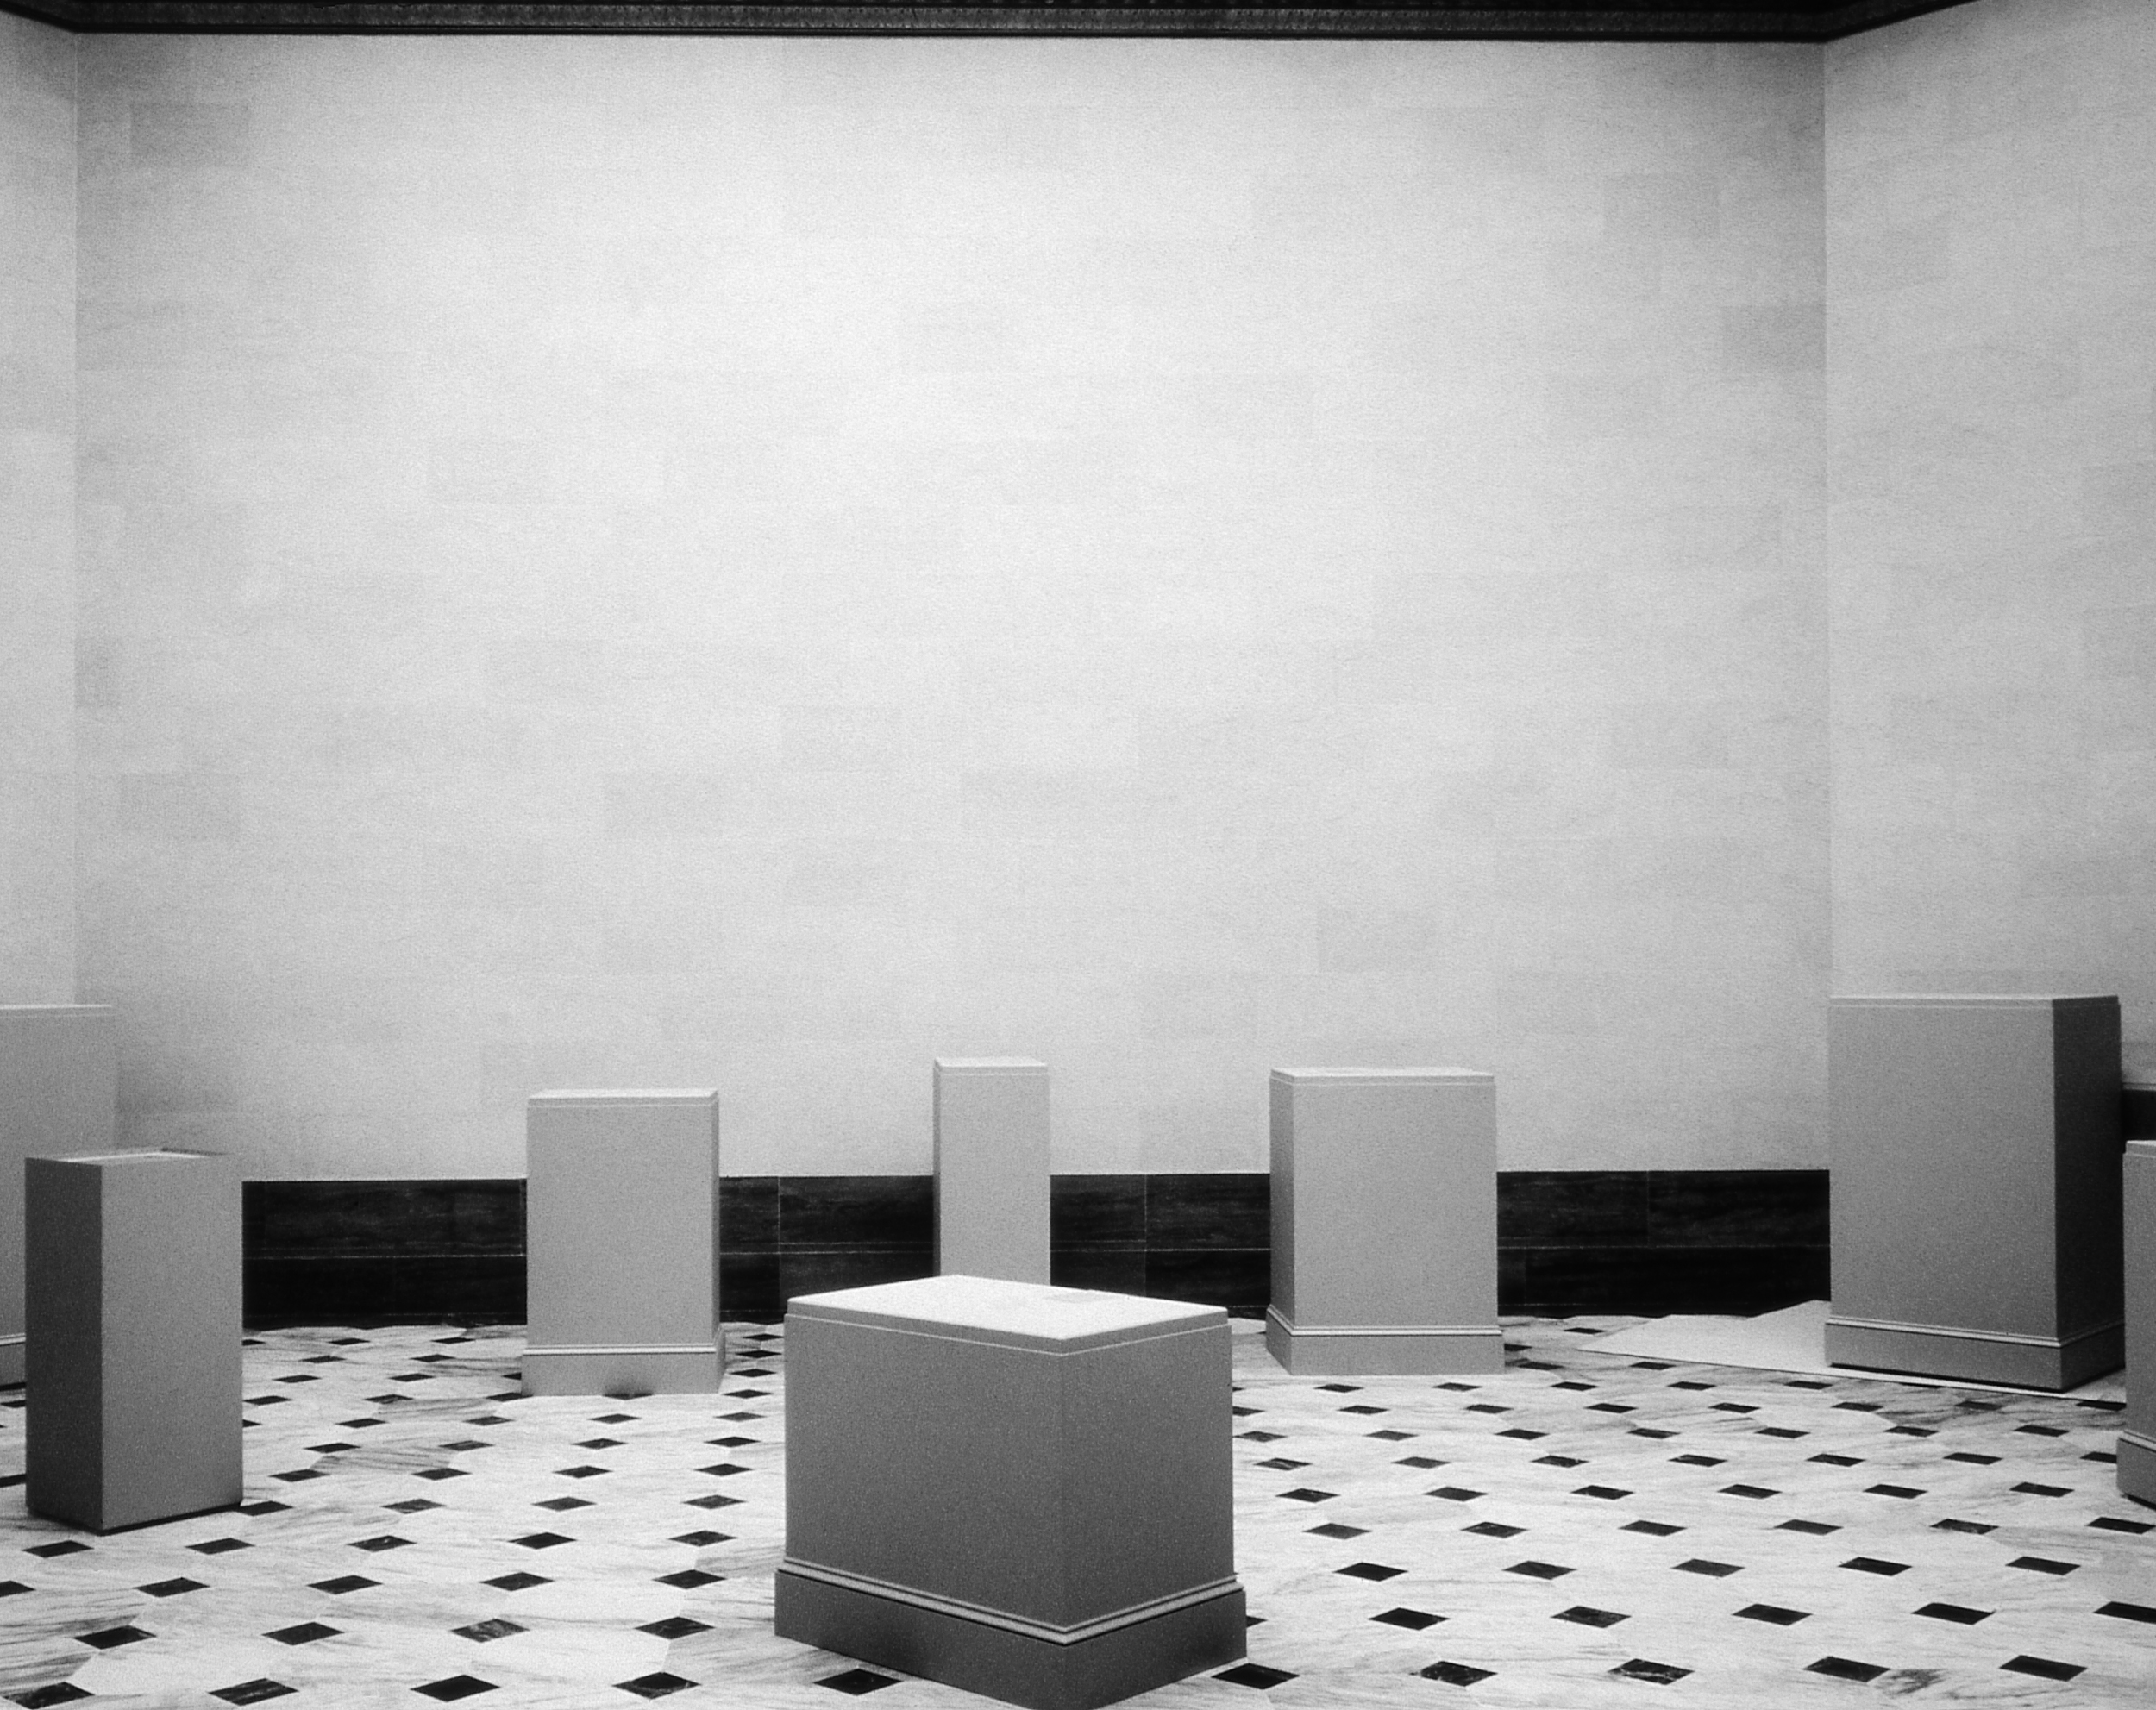 Pedestals, Installation View, 1995